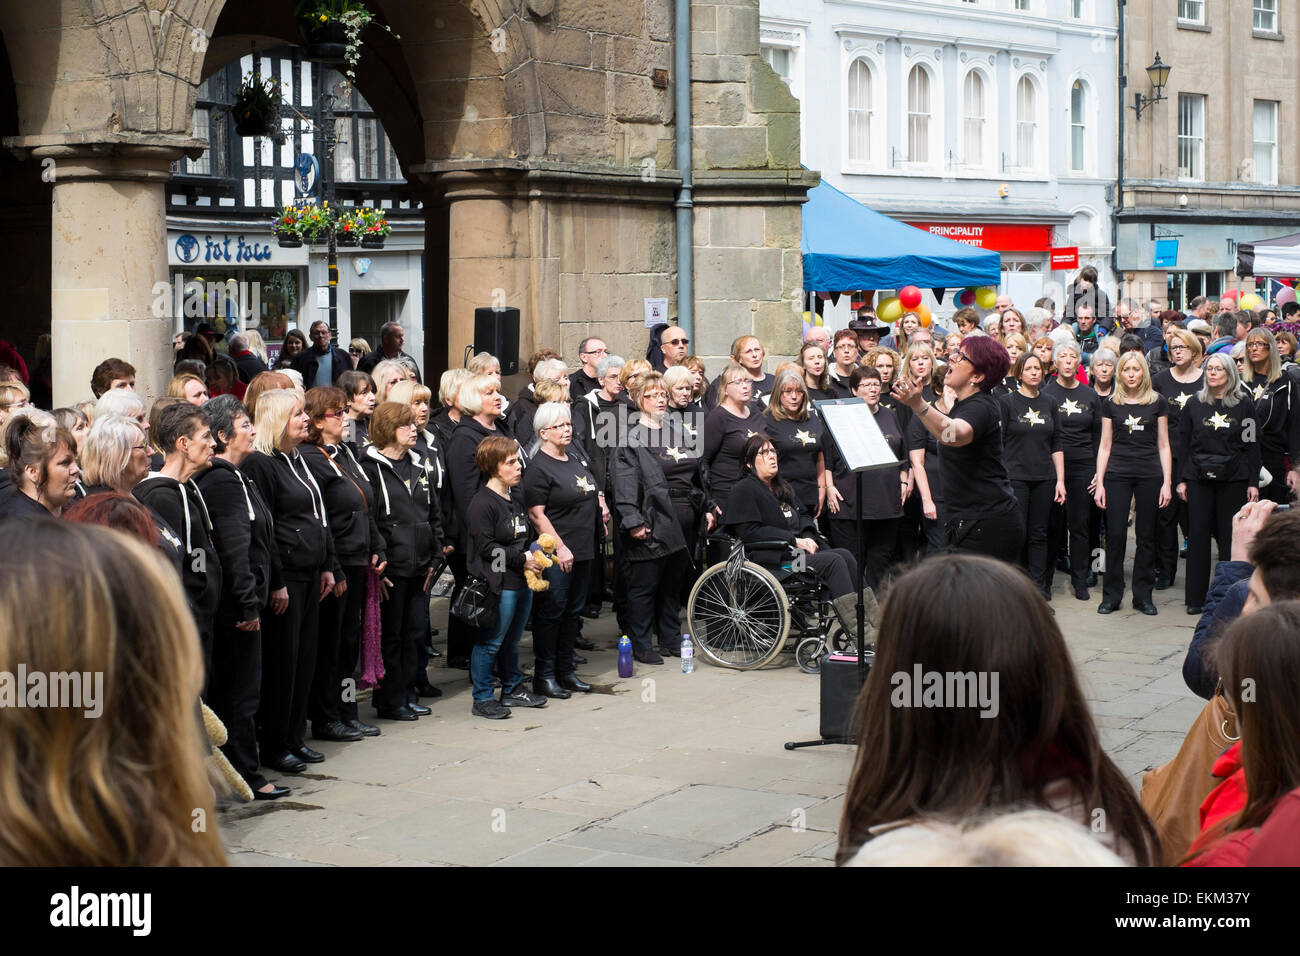 Got 2 Sing perform in the Square as part of The Big Busk, Shrewsbury, Shropshire, England. - Stock Image